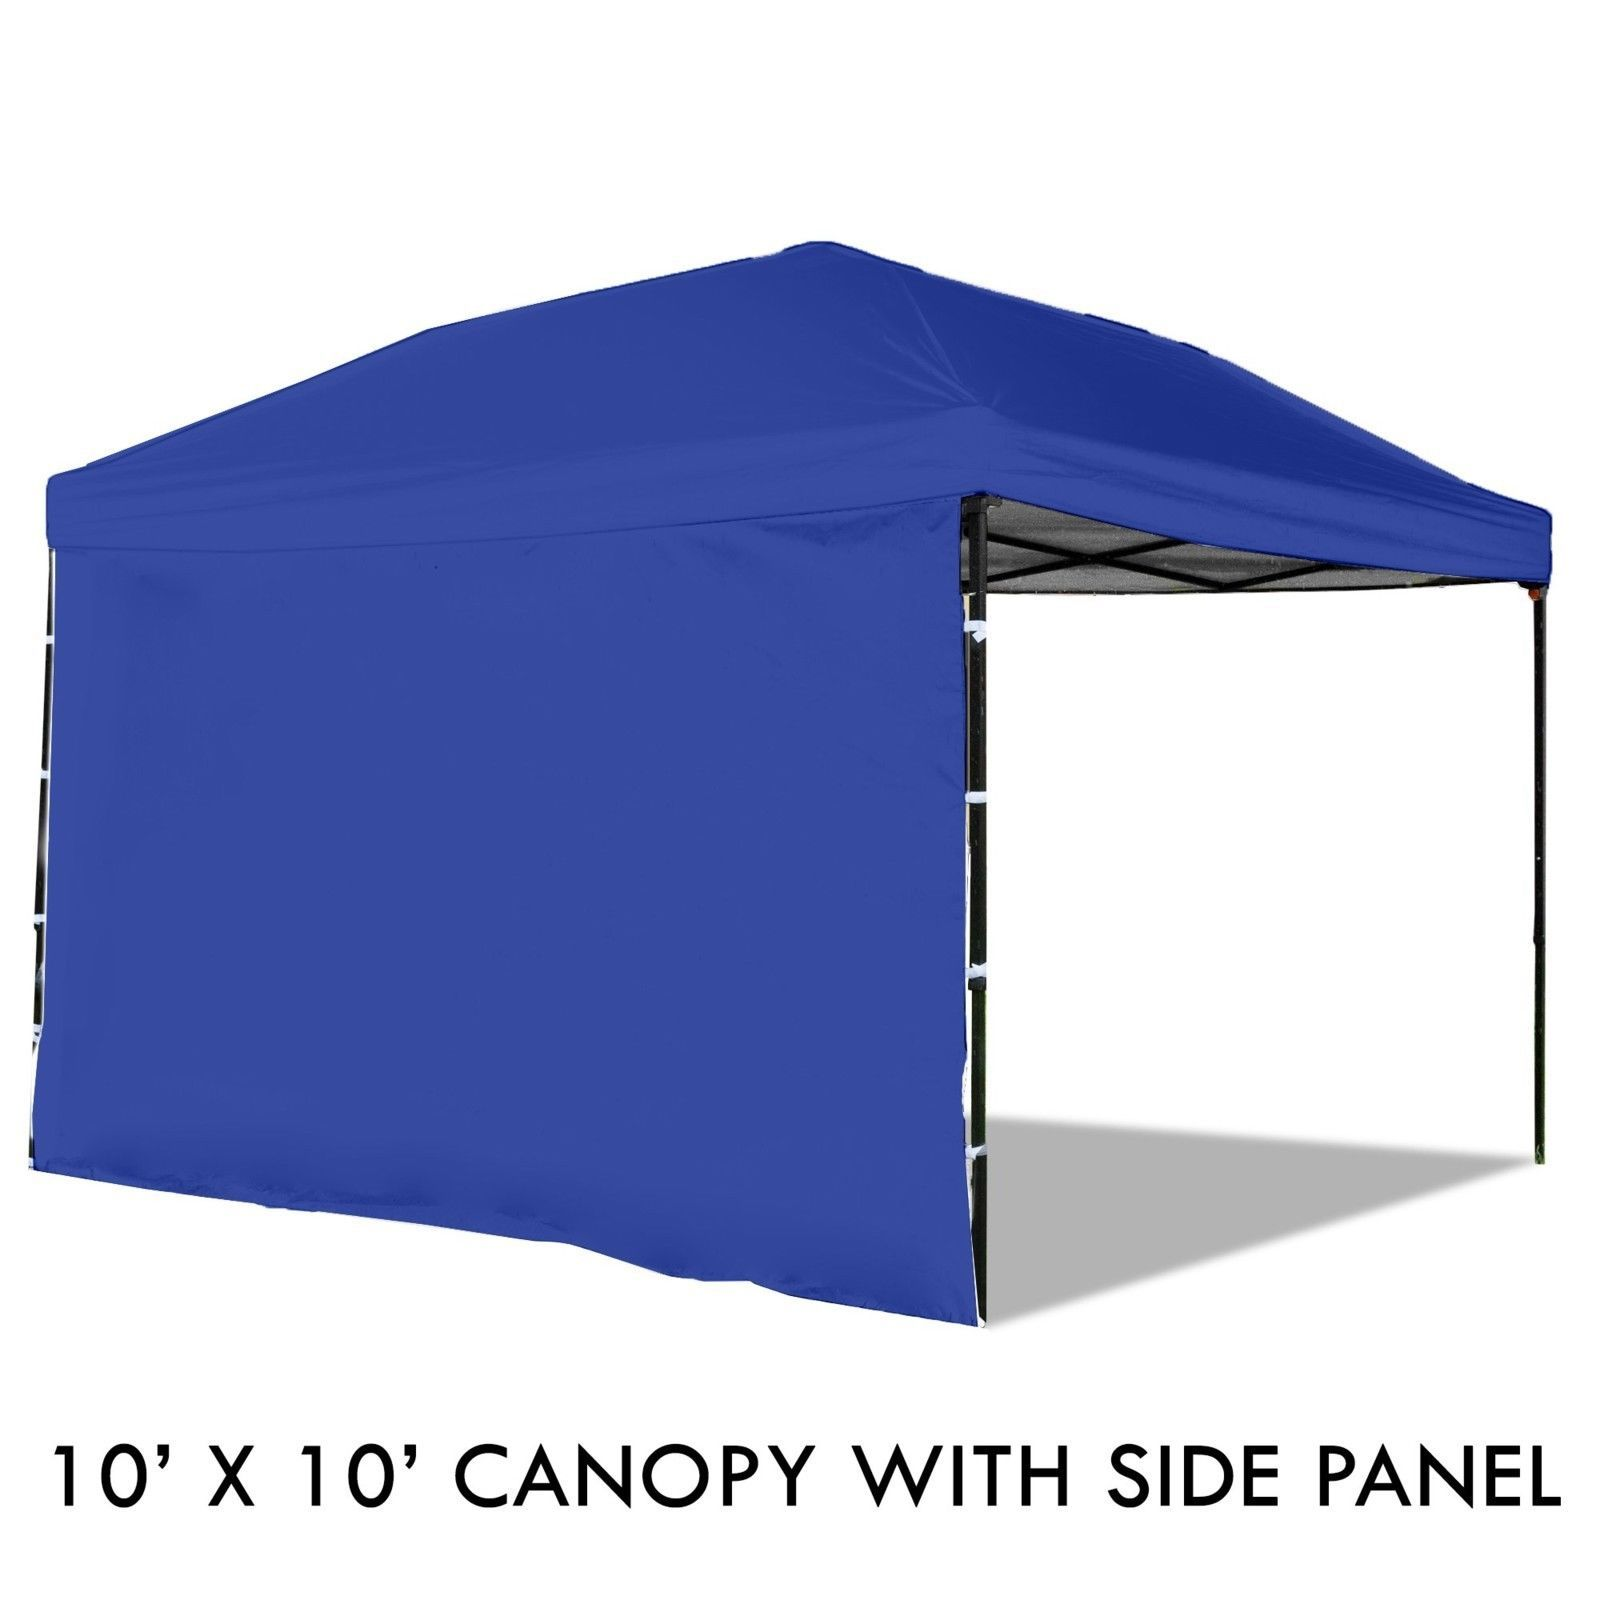 Pop Up Canopy Tent Sidewall 10 X 10 Feet Blue Uv Coated Waterproof Outdoors All Proceeds Go To The Disabled Canopy Tent Rustic Canopy Beds Canopy